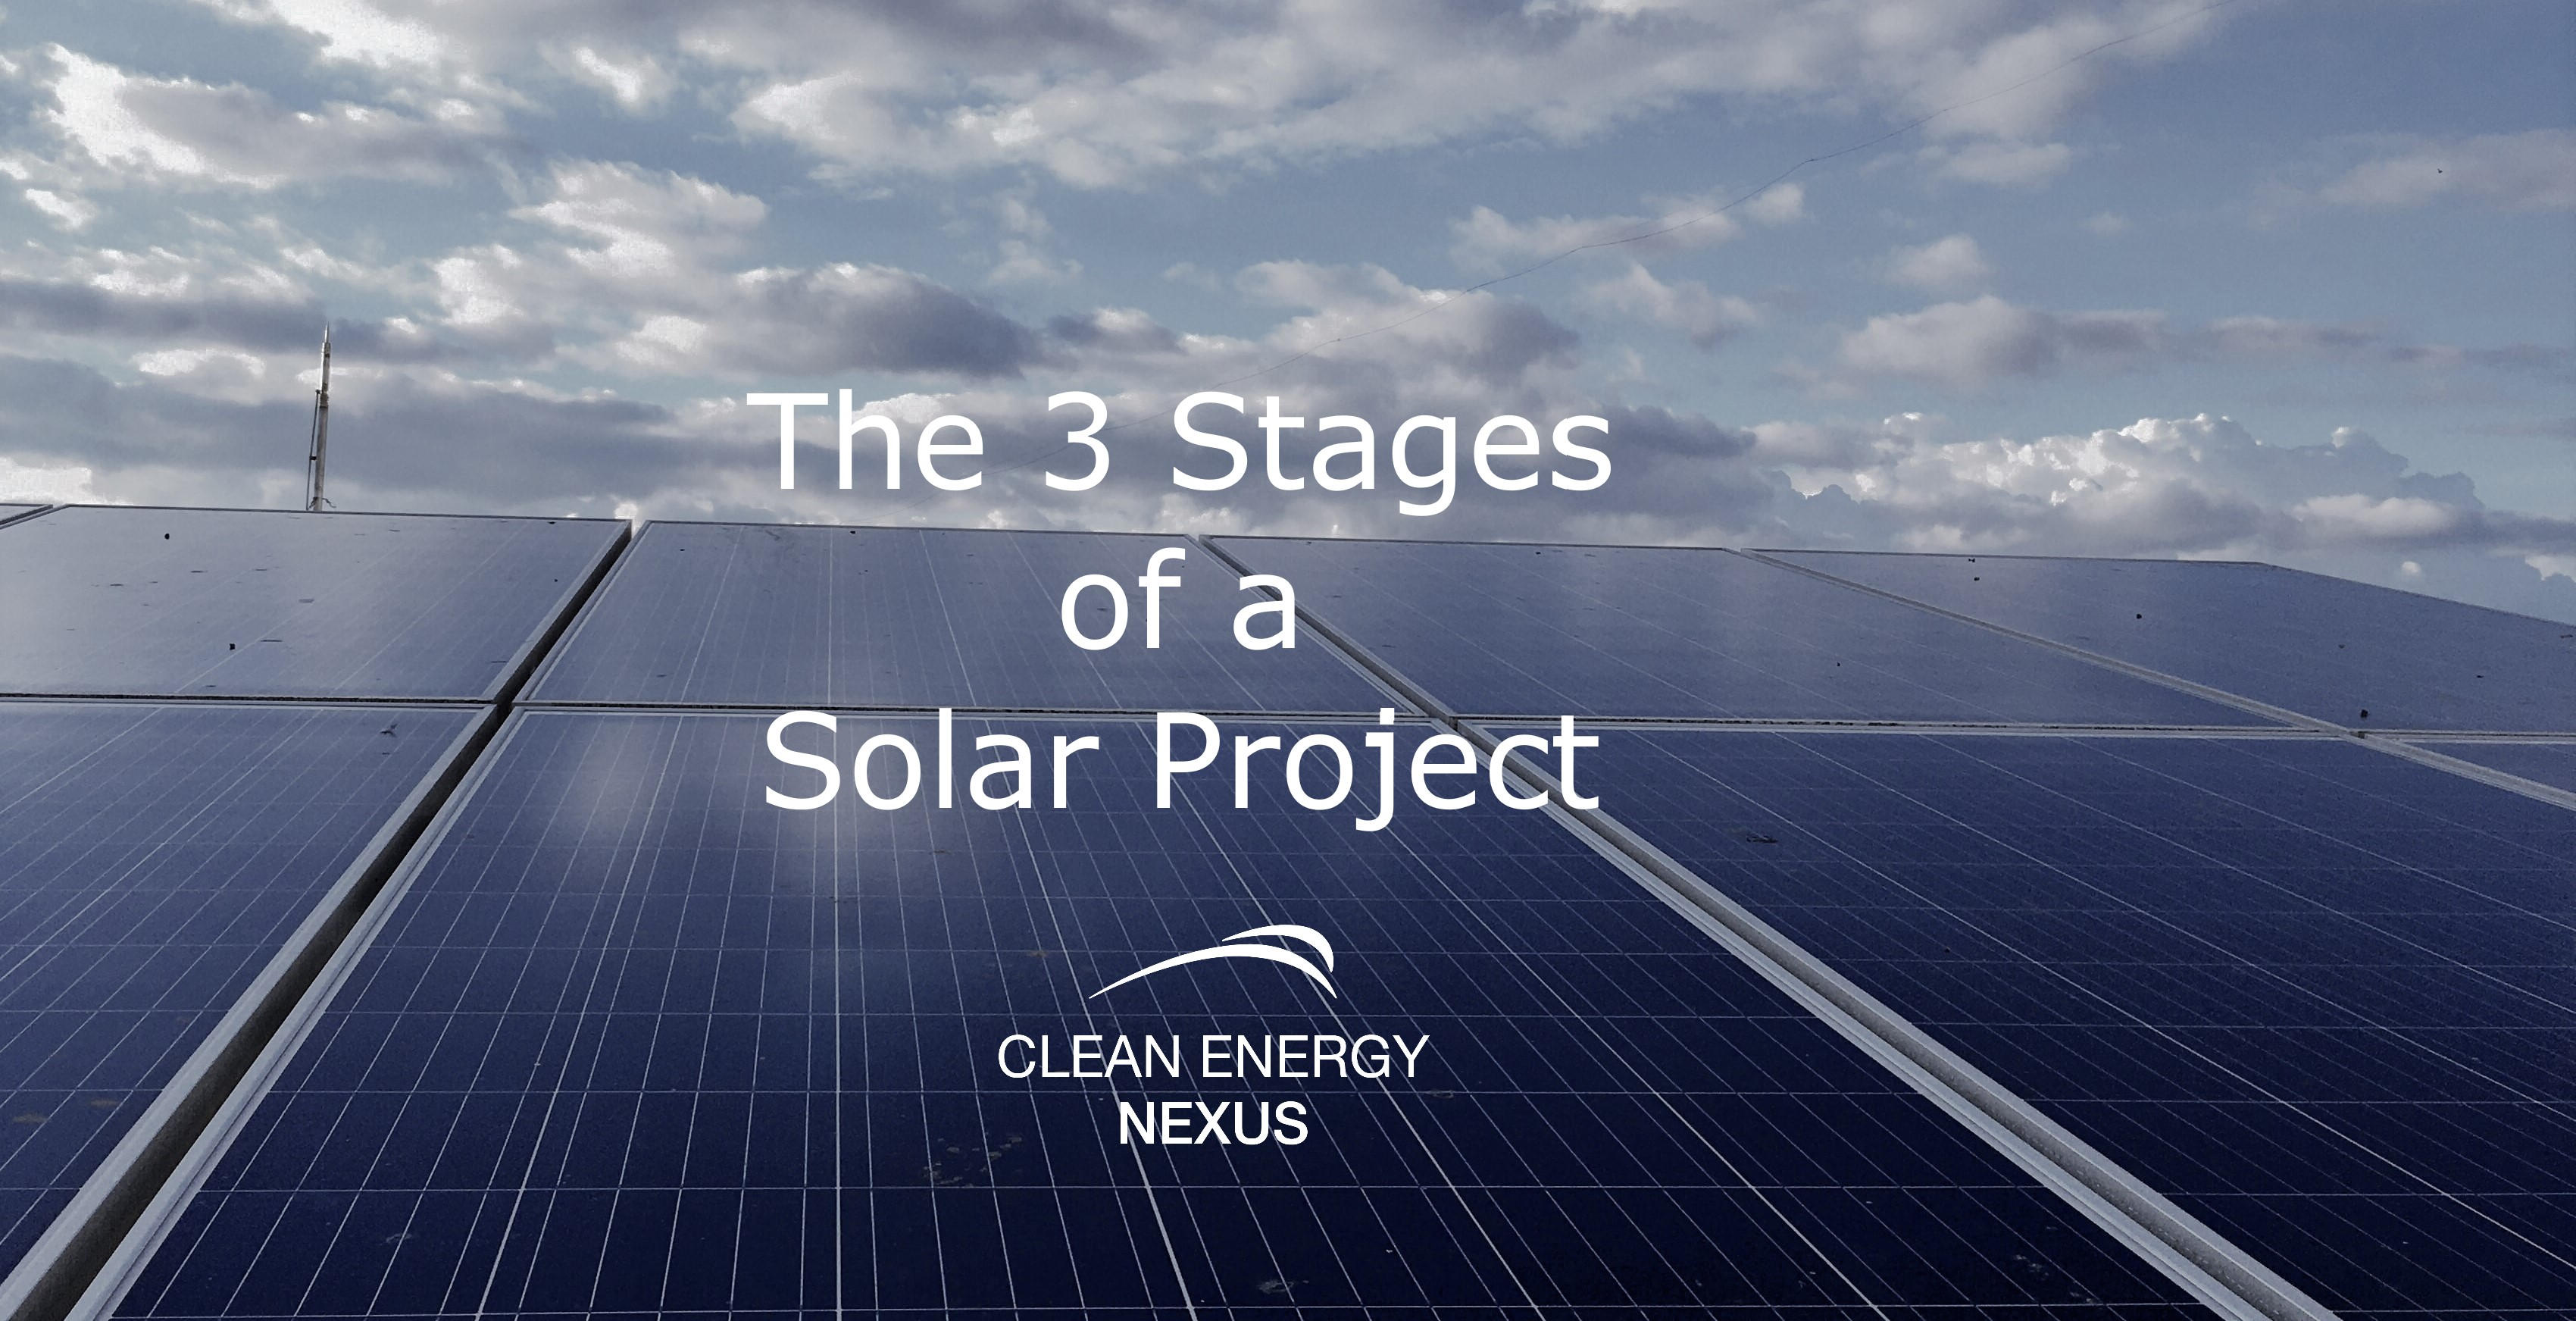 The 3 Stages of a Solar Project